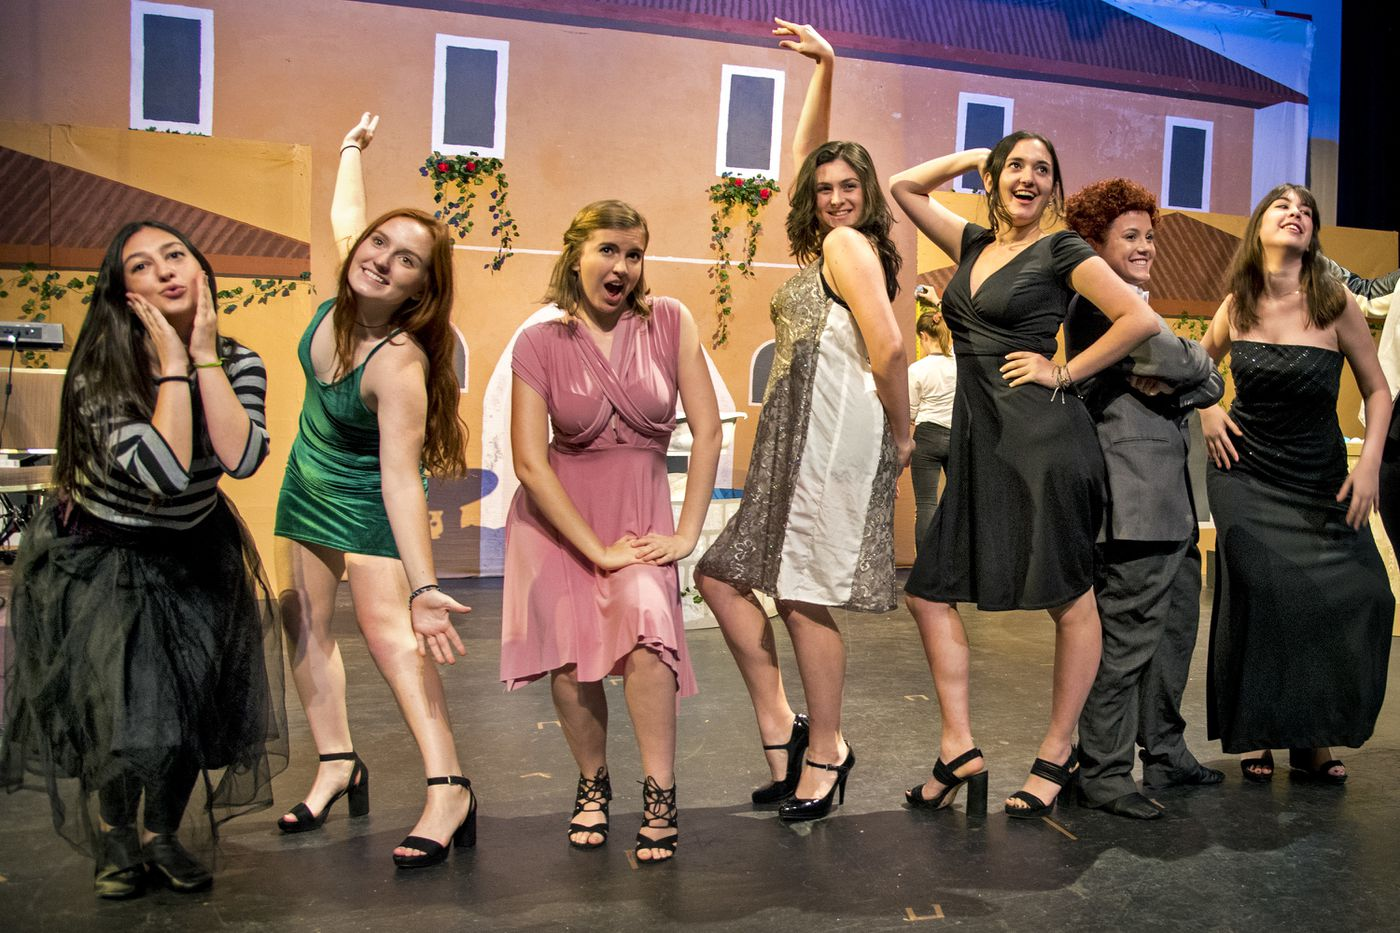 Penn's pioneering all-female musical comedy troupe launched an SNL star. What's next?